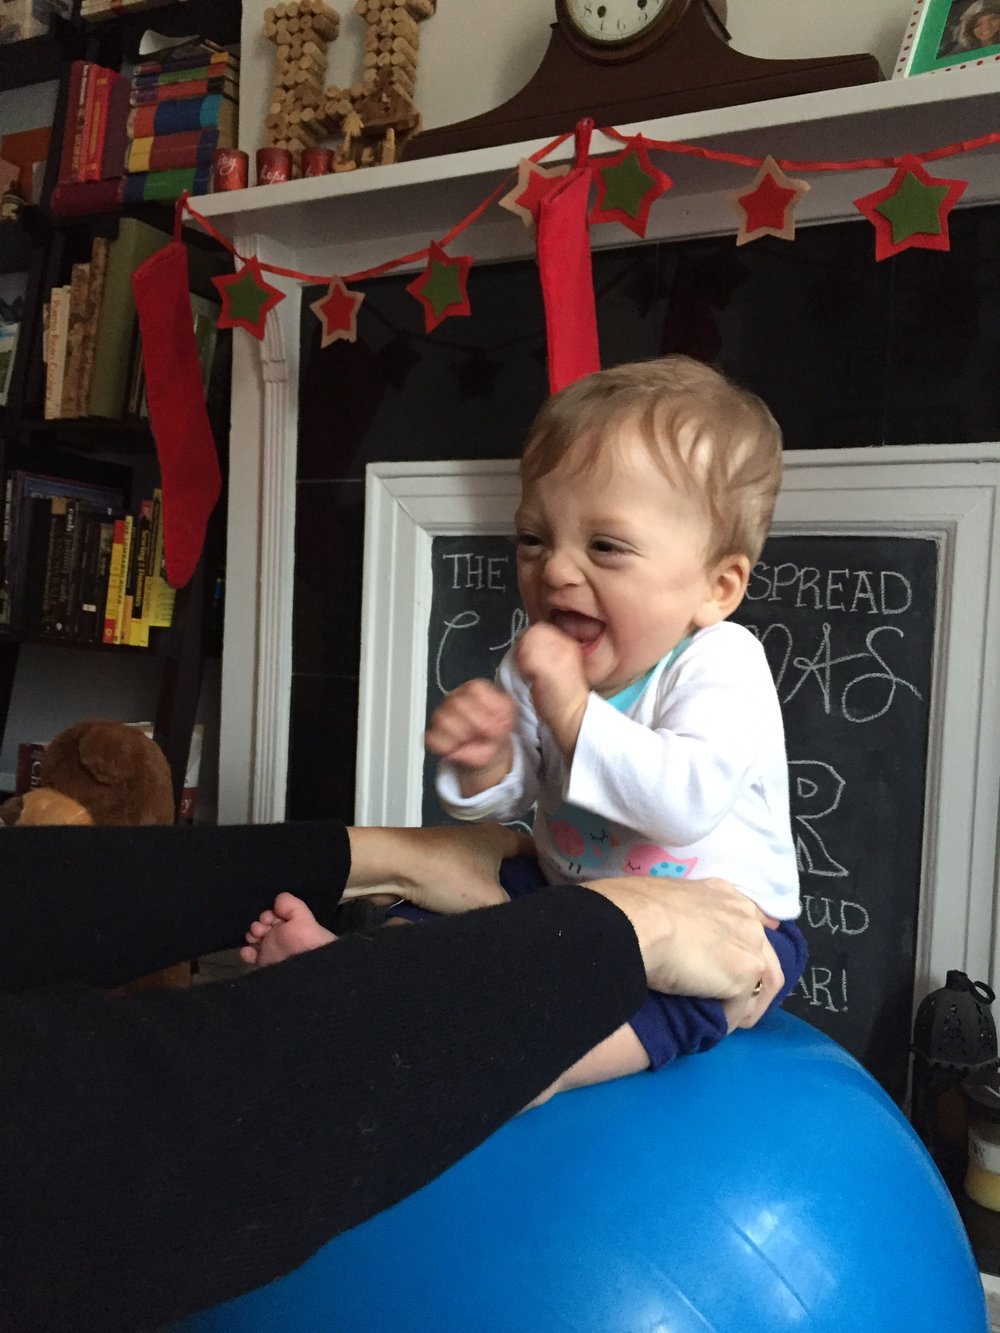 Singing a song on the ball, we captured a rare smile/ laugh! Bouncing can be fun, we promise!